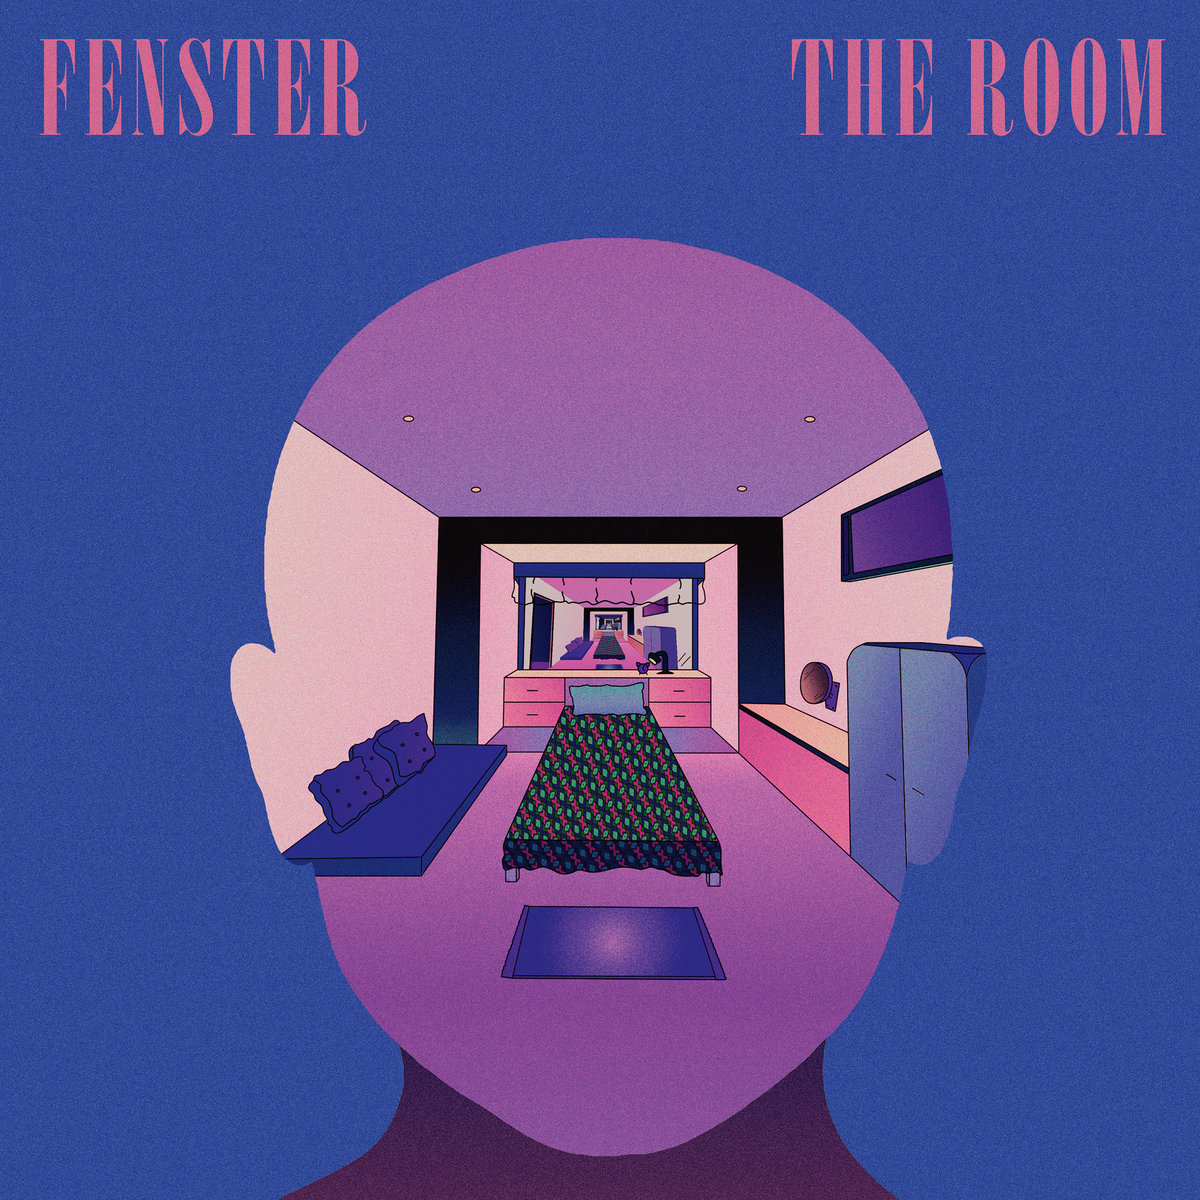 The Room   FENSTER